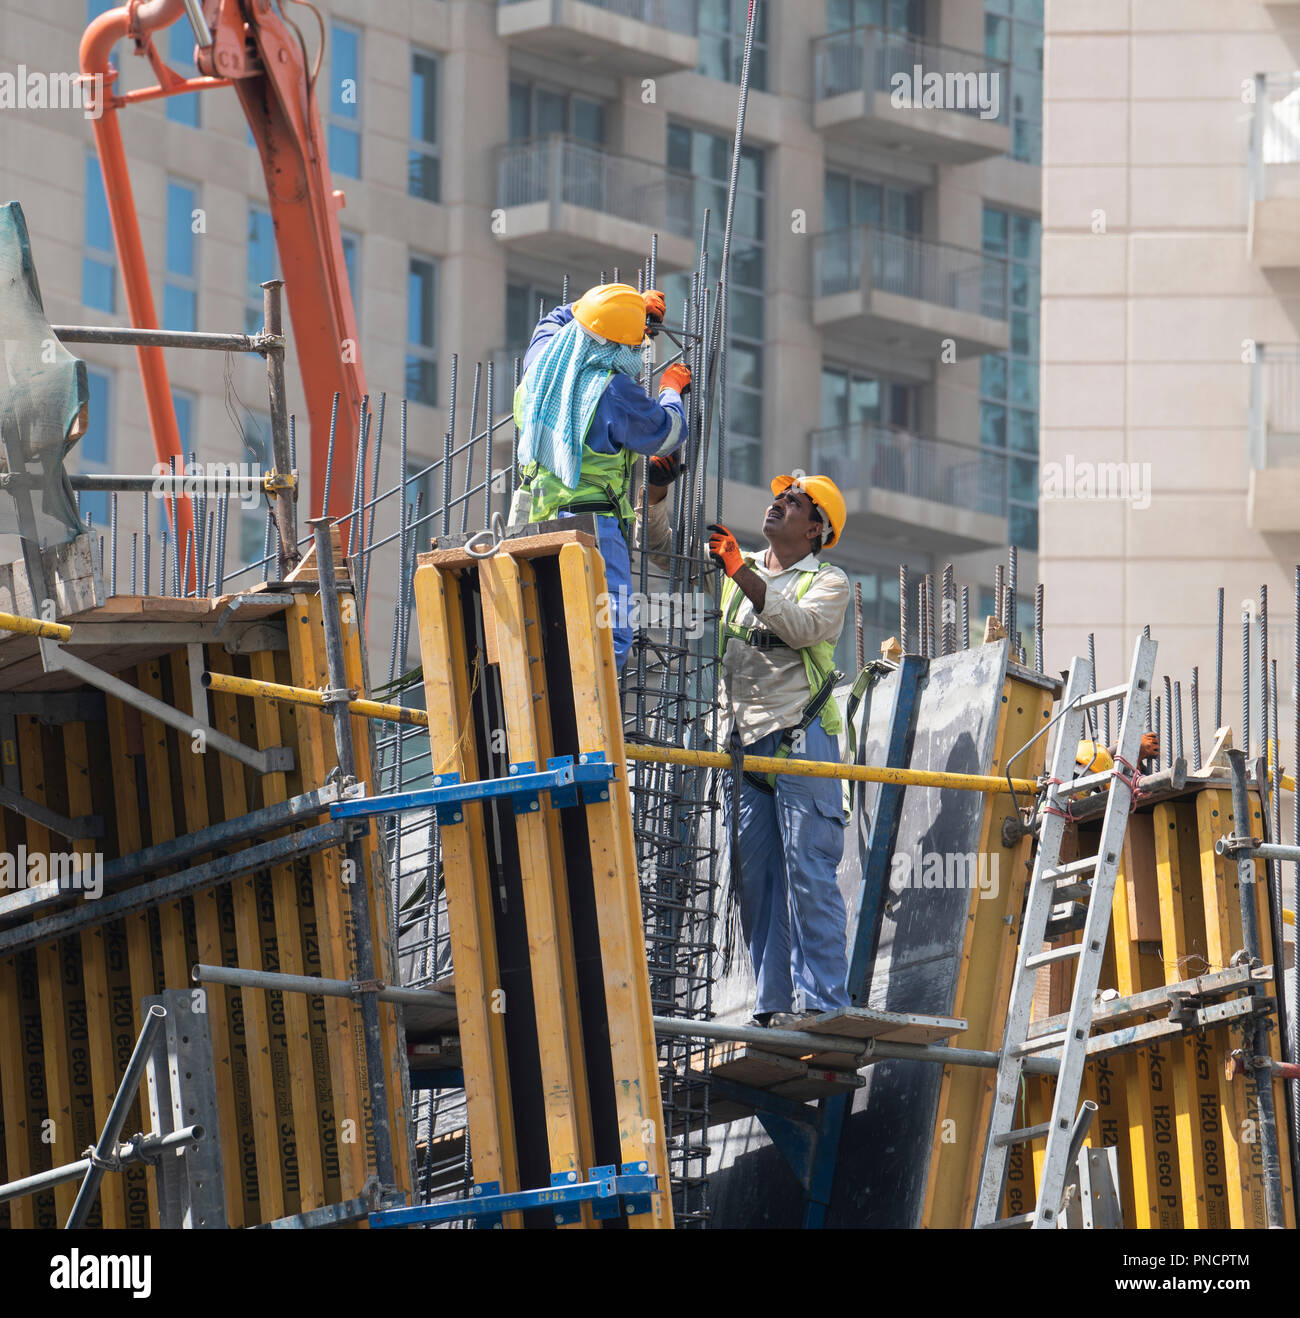 Construction workers on site building new high rise luxury apartment building art Downtown Dubai, UAE, united Arab Emirates - Stock Image